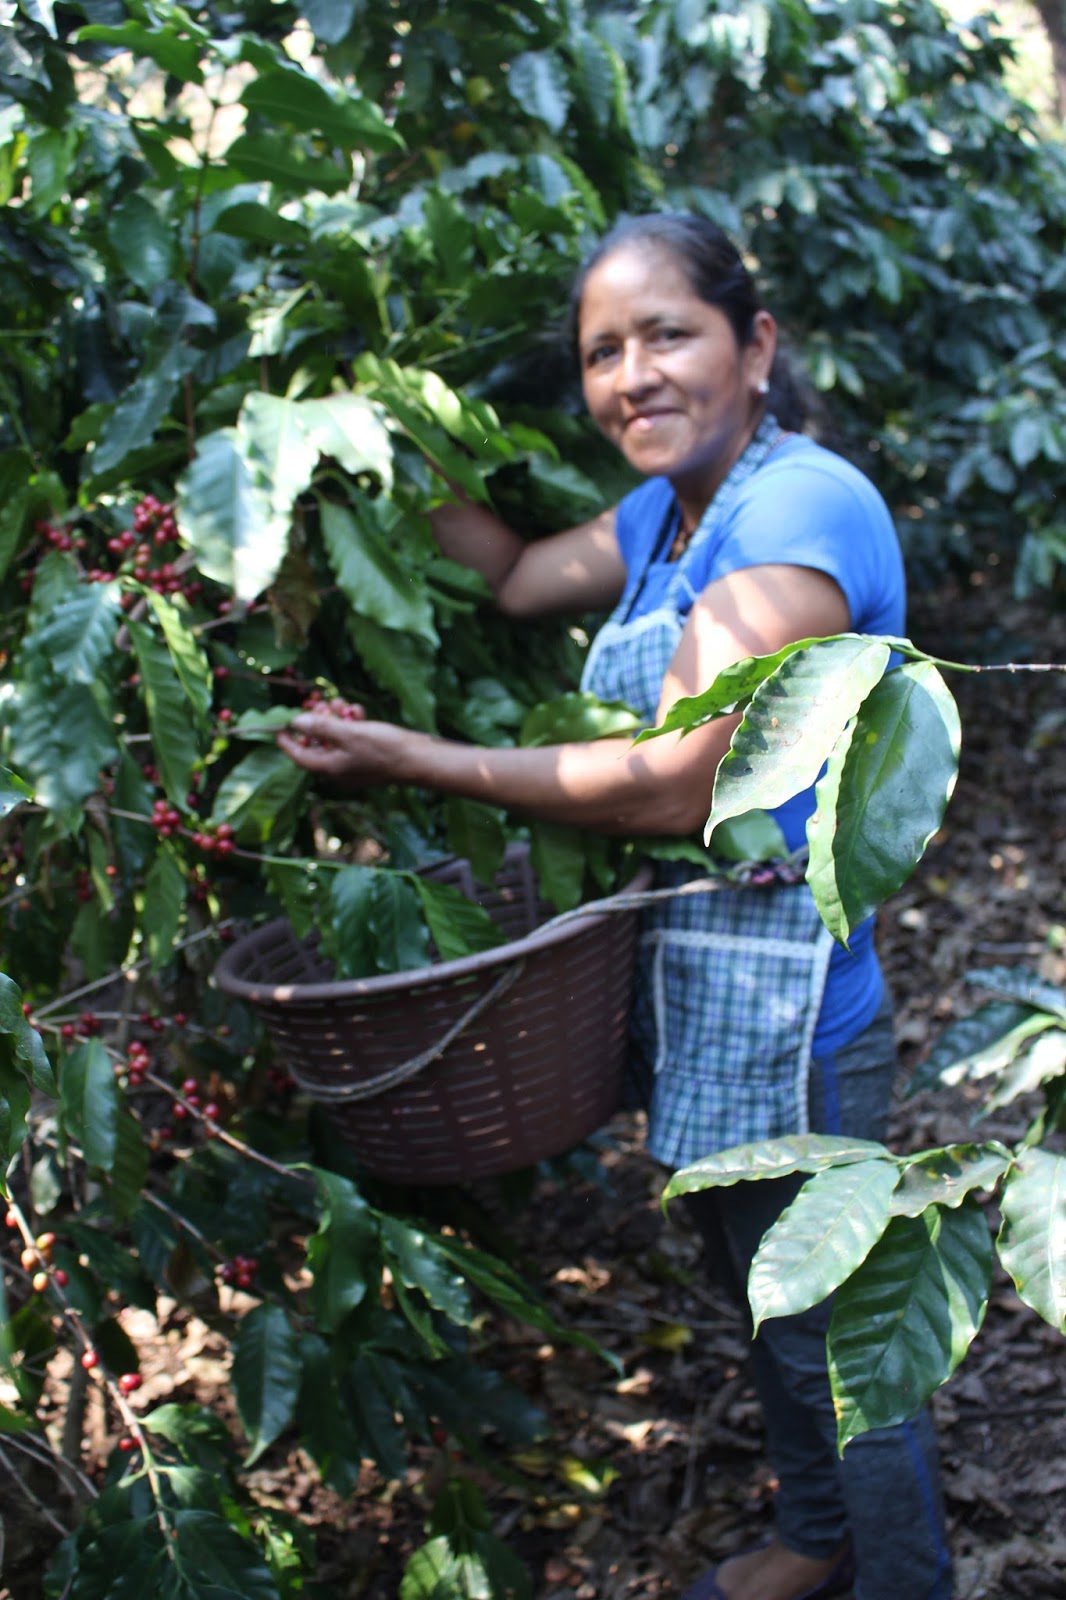 Juanita with some of her coffee. Her fields looked healthy and well cared for.